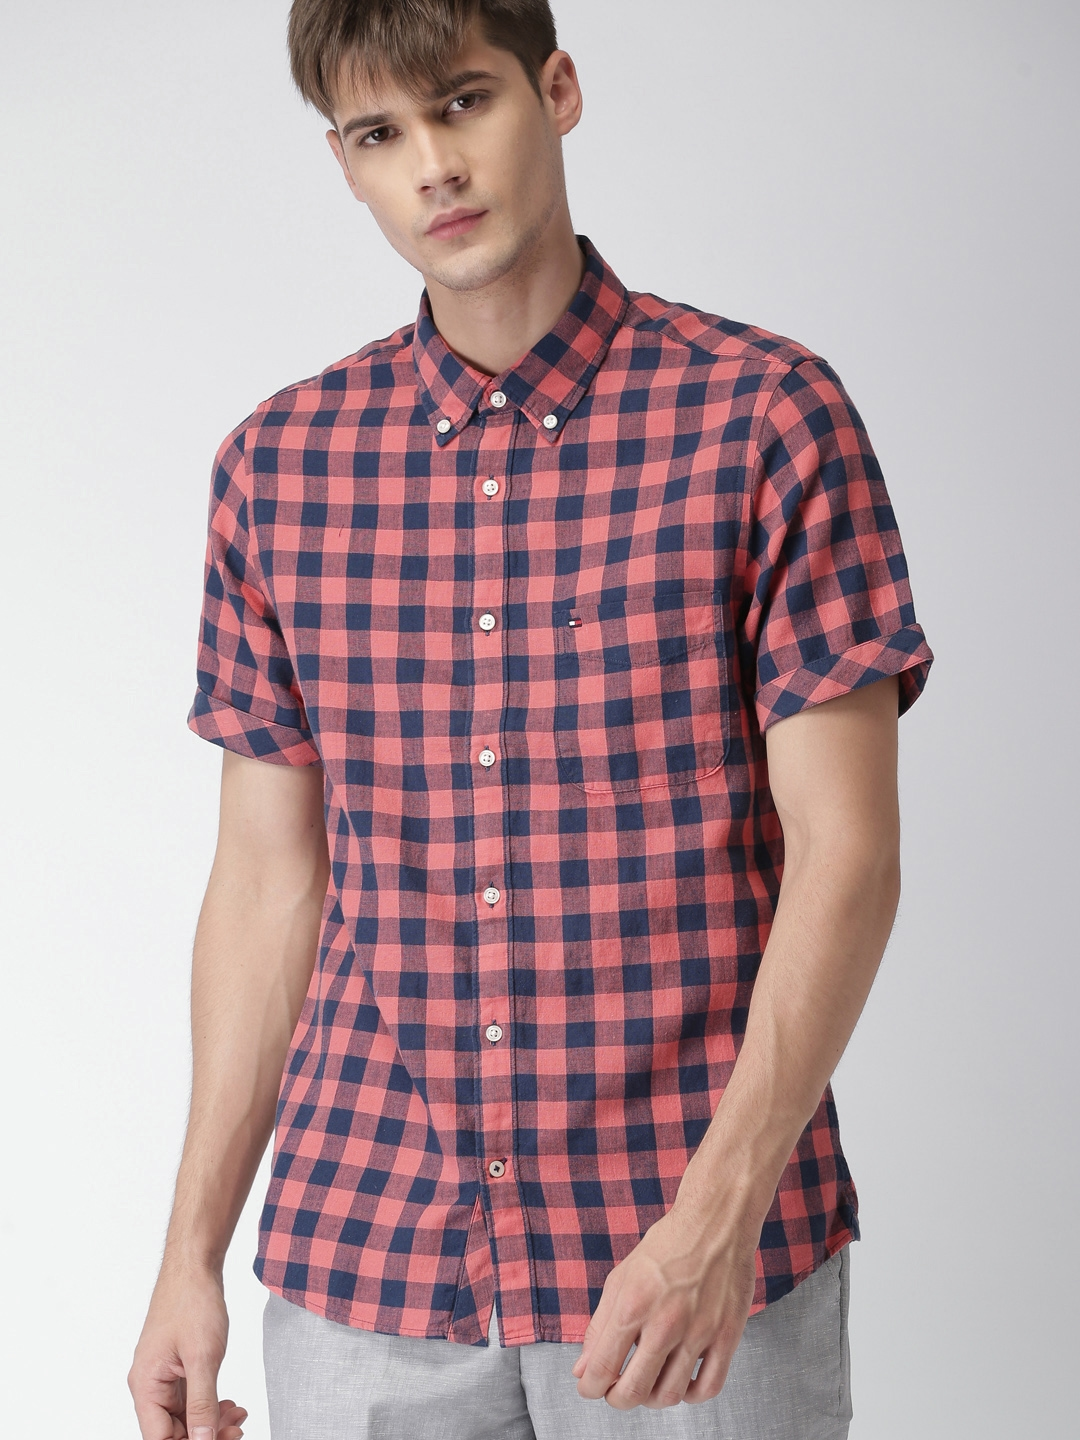 8e8920bc Tommy Hilfiger Men Coral Pink & Navy Blue Slim Fit Checked Casual Shirt